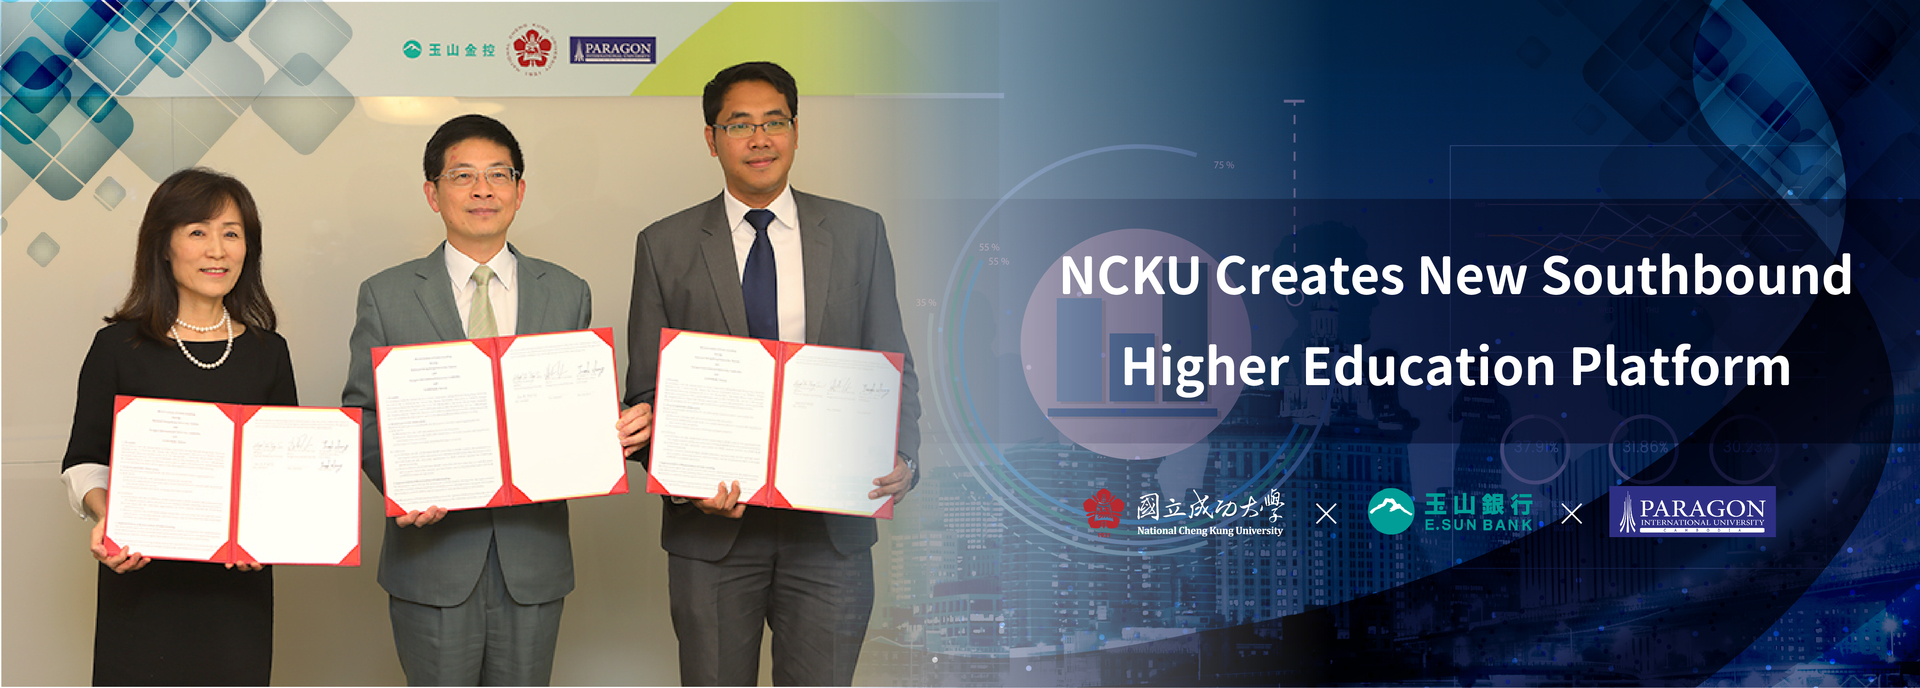 NCKU Creates New Southbound Higher Education Platform with Financial Community